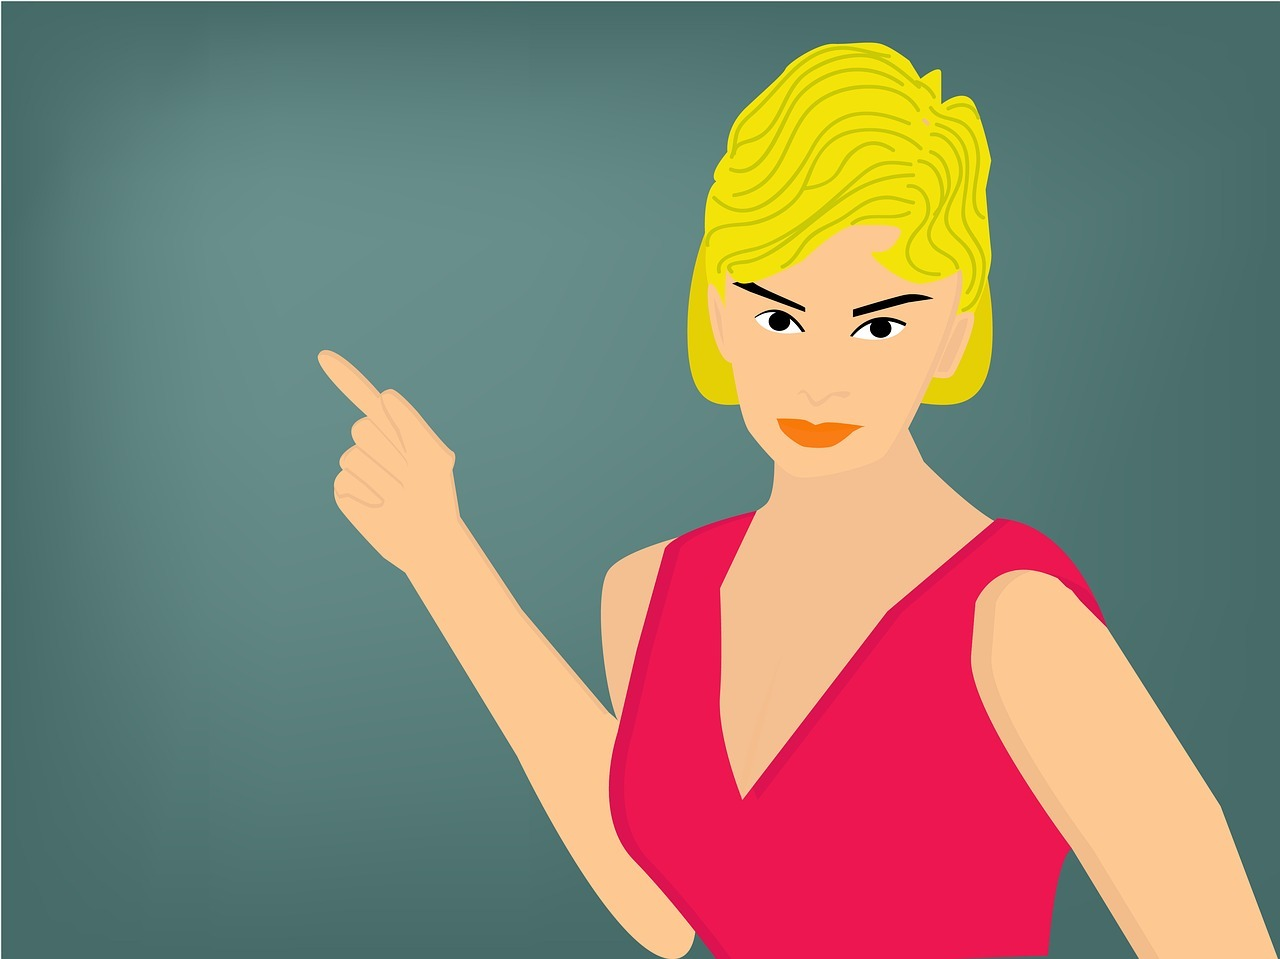 Hello, My Name is Bob.